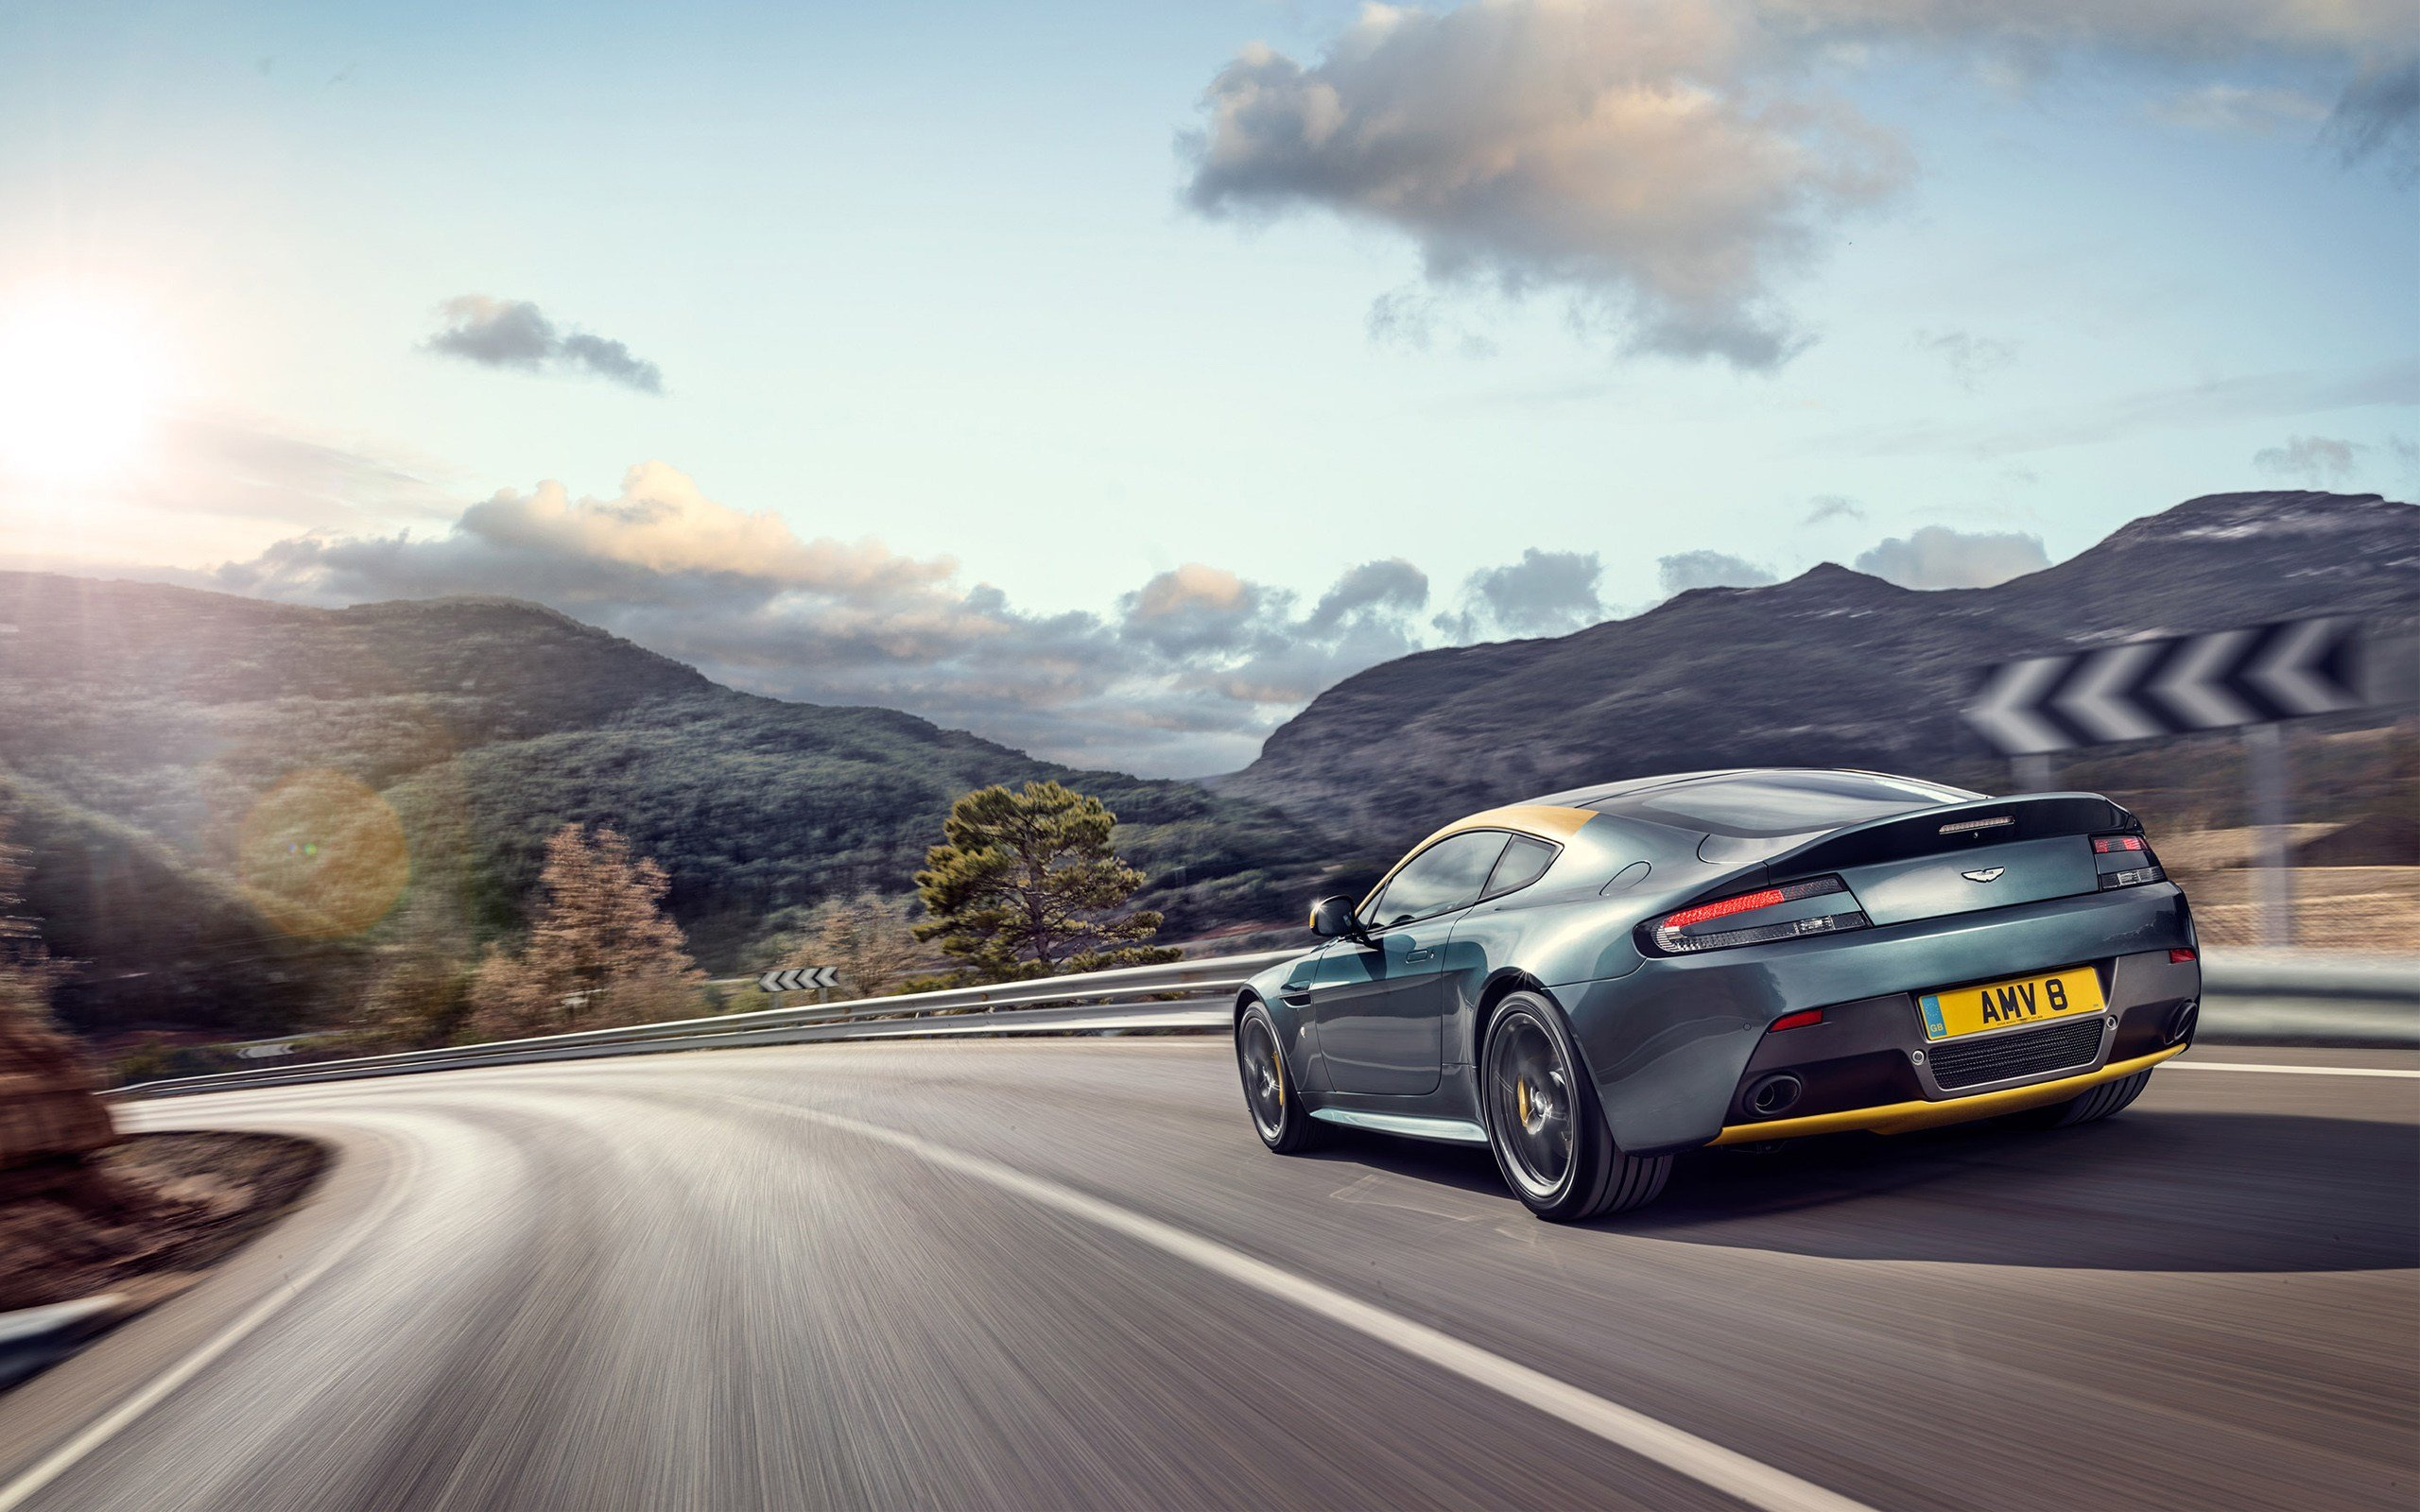 Latest 2014 Aston Martin V8 Vantage N430 3 Wallpaper Hd Car Free Download